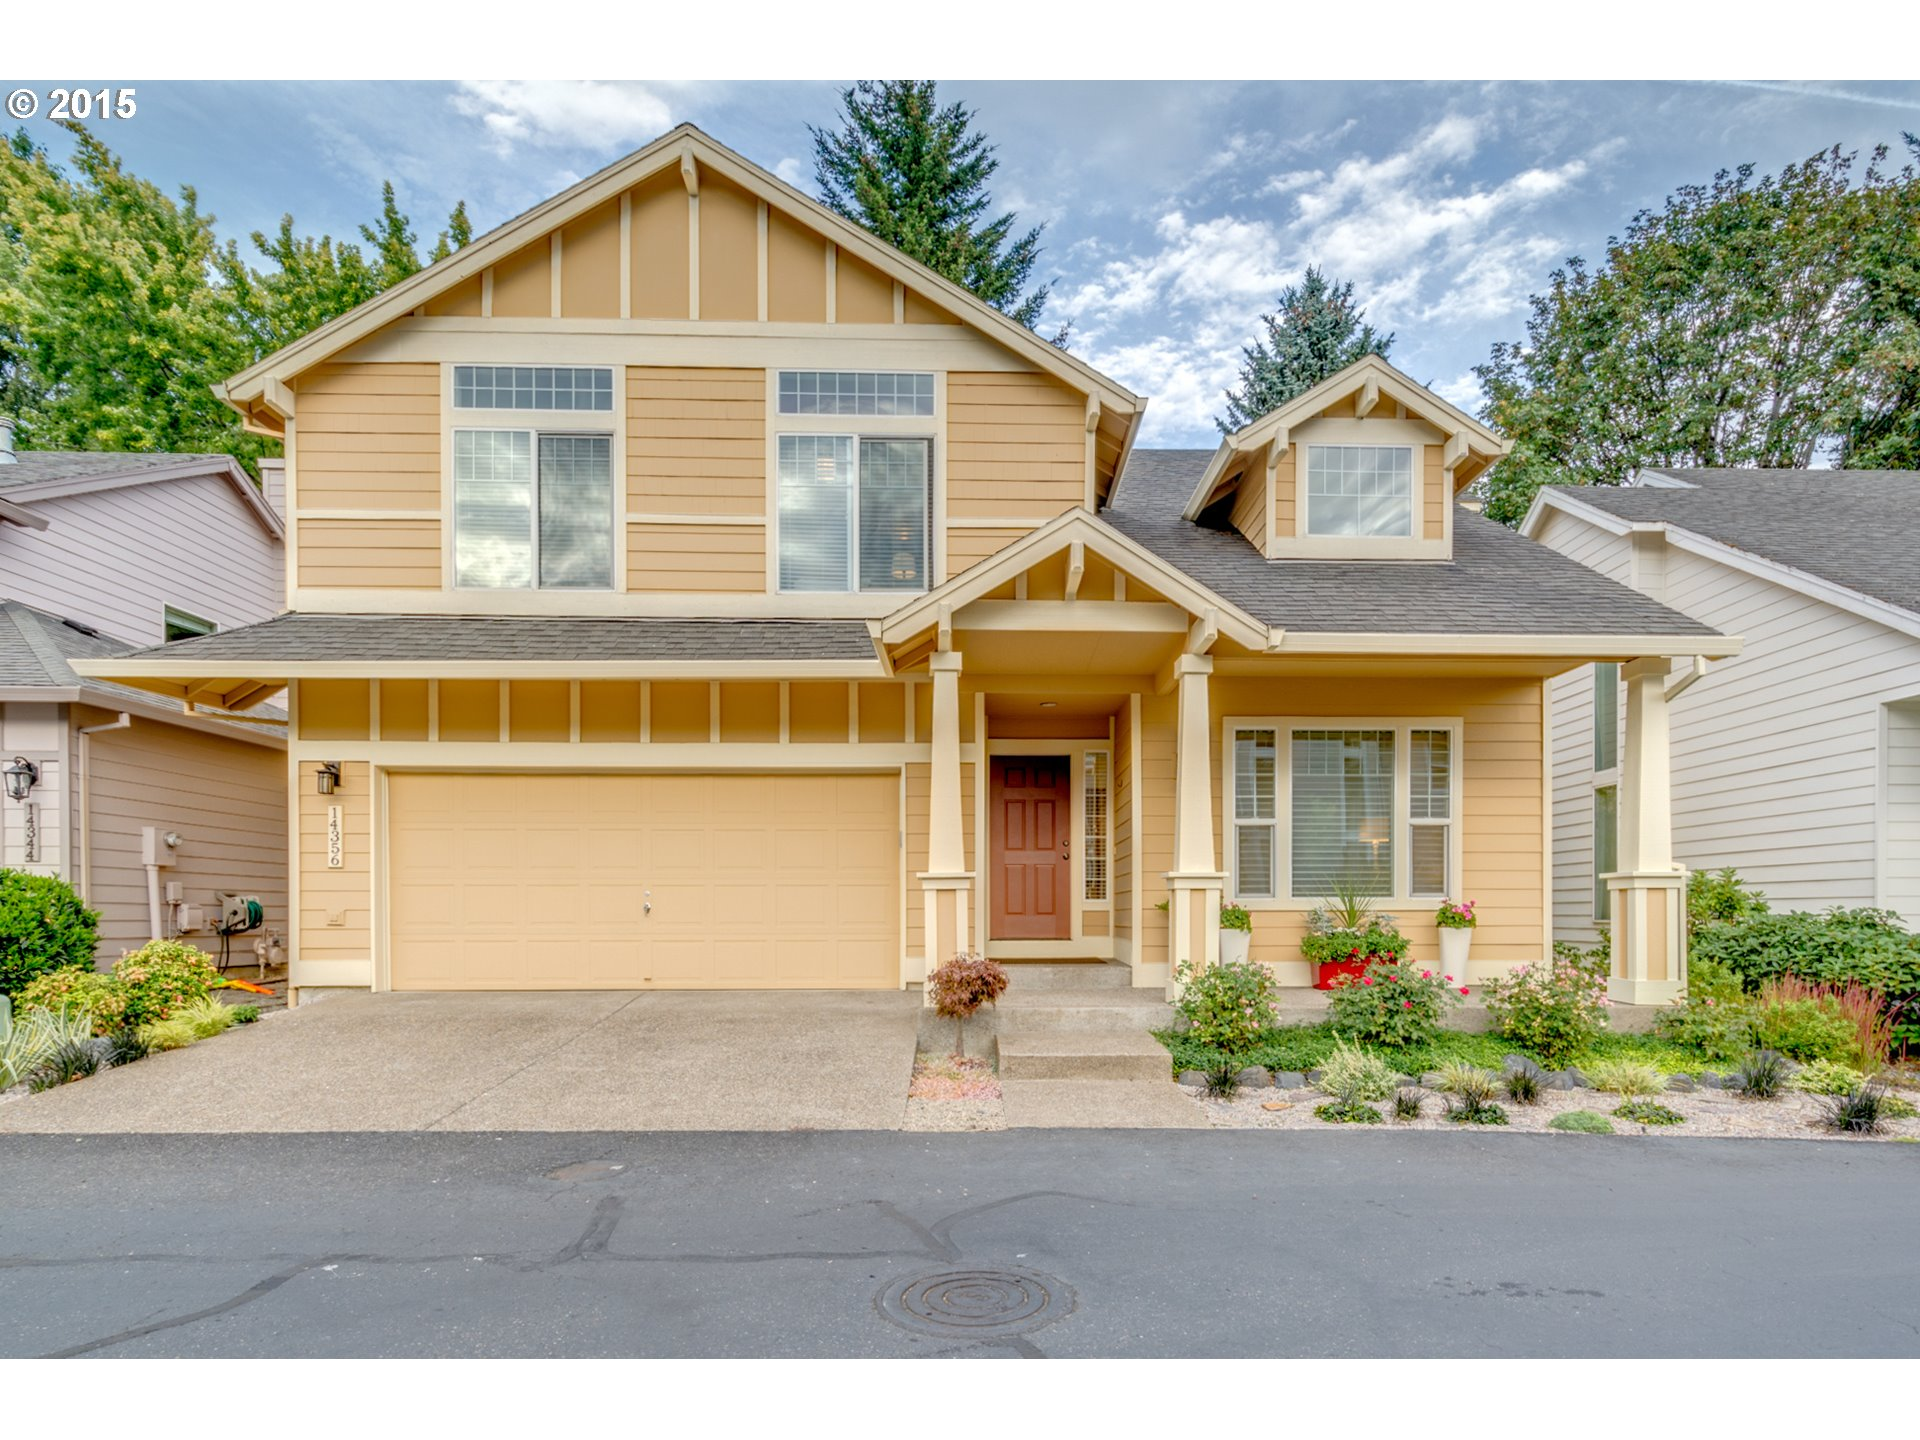 14356 HOLLY SPRINGS RD, Lake Oswego OR 97035